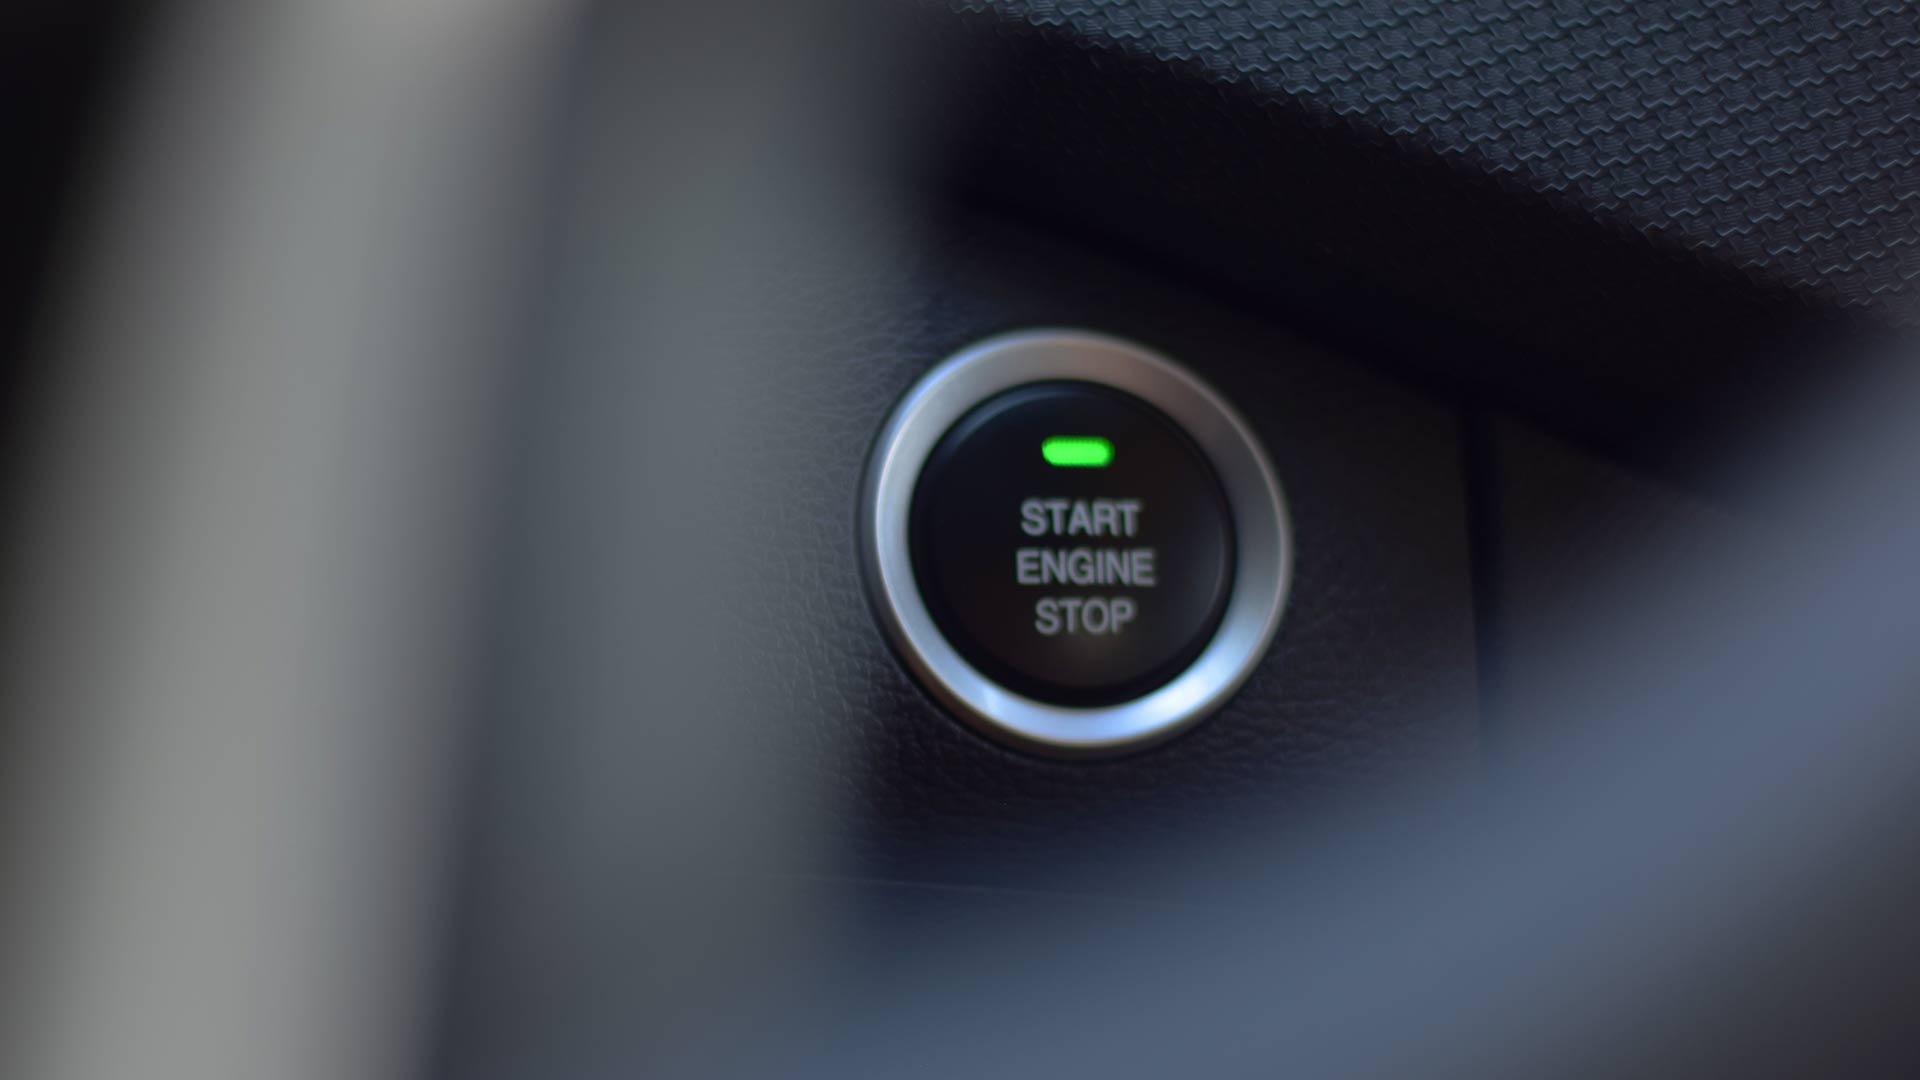 The Maxus T60 engine button